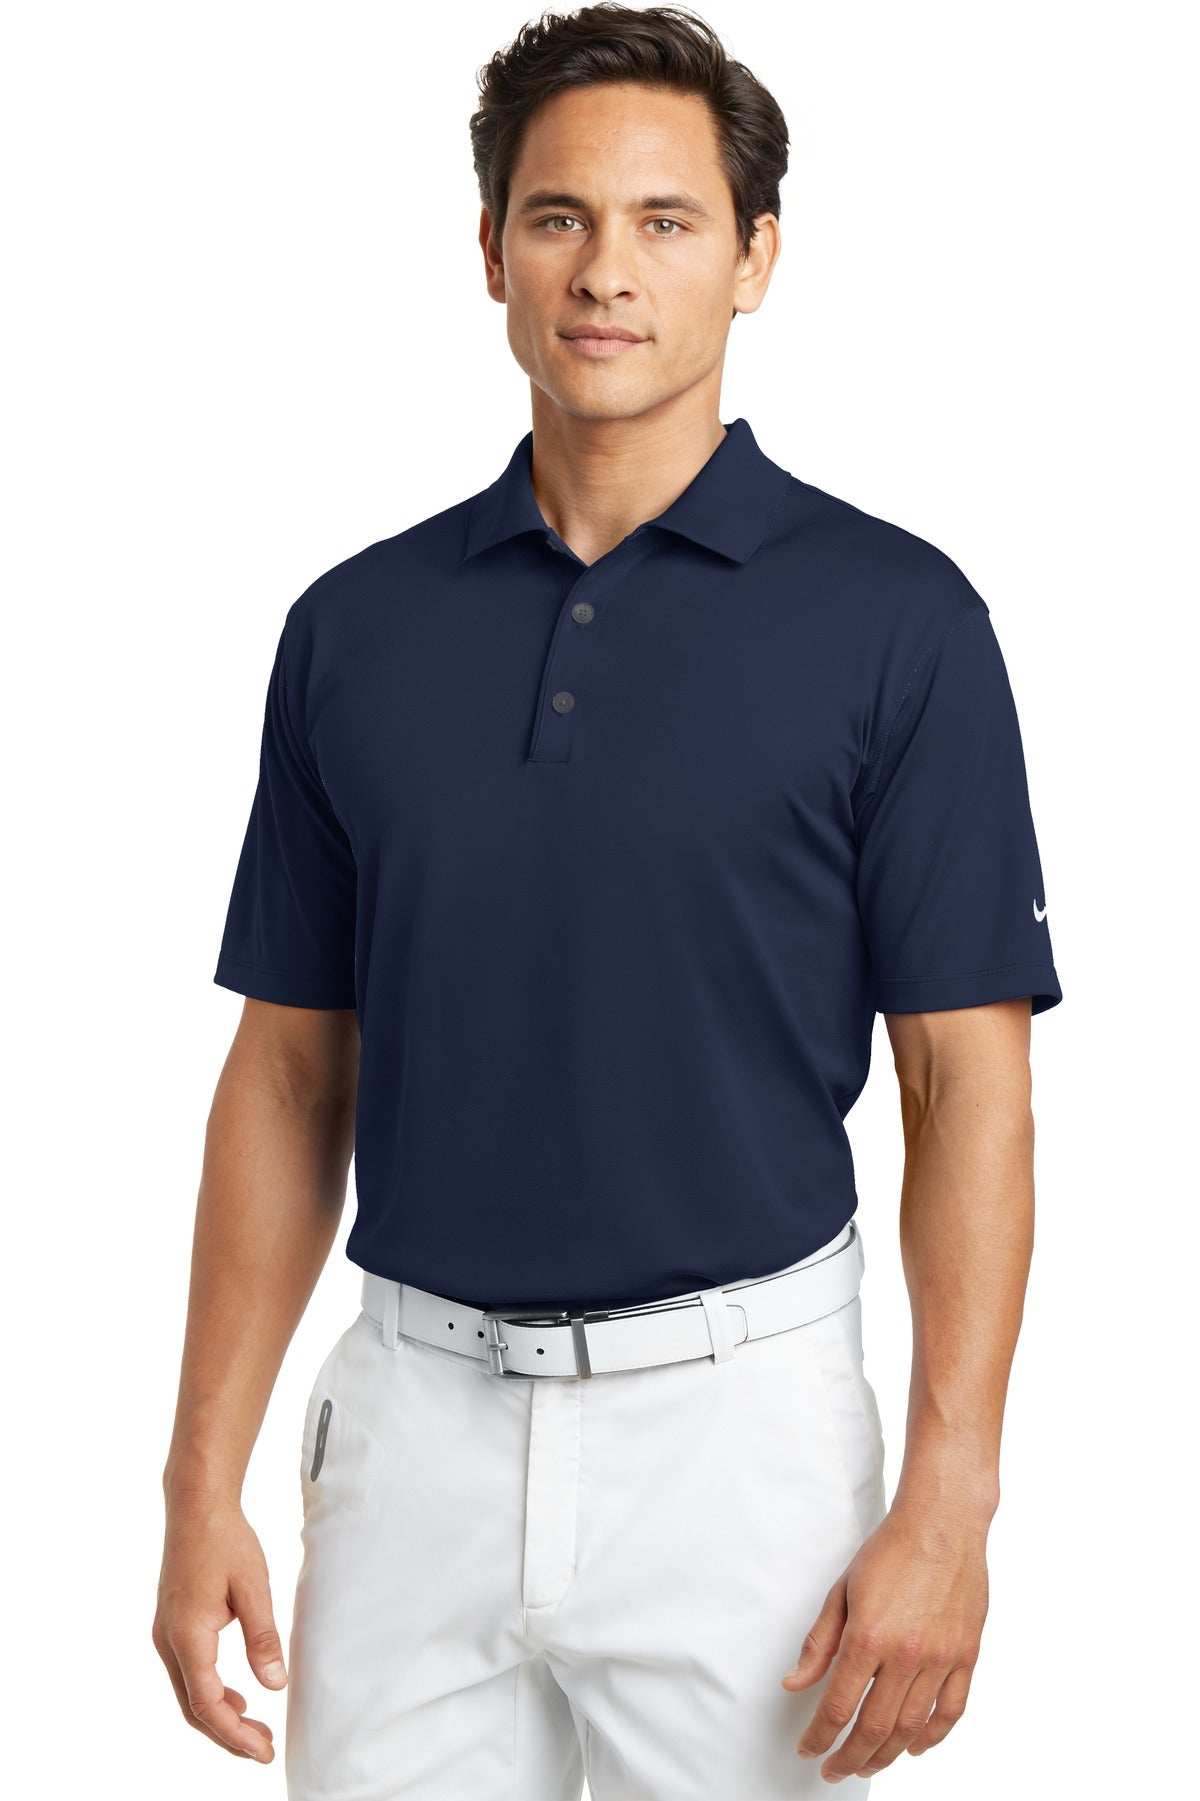 Midnight Navy Nike Tech Basic Dri-FIT Polo.